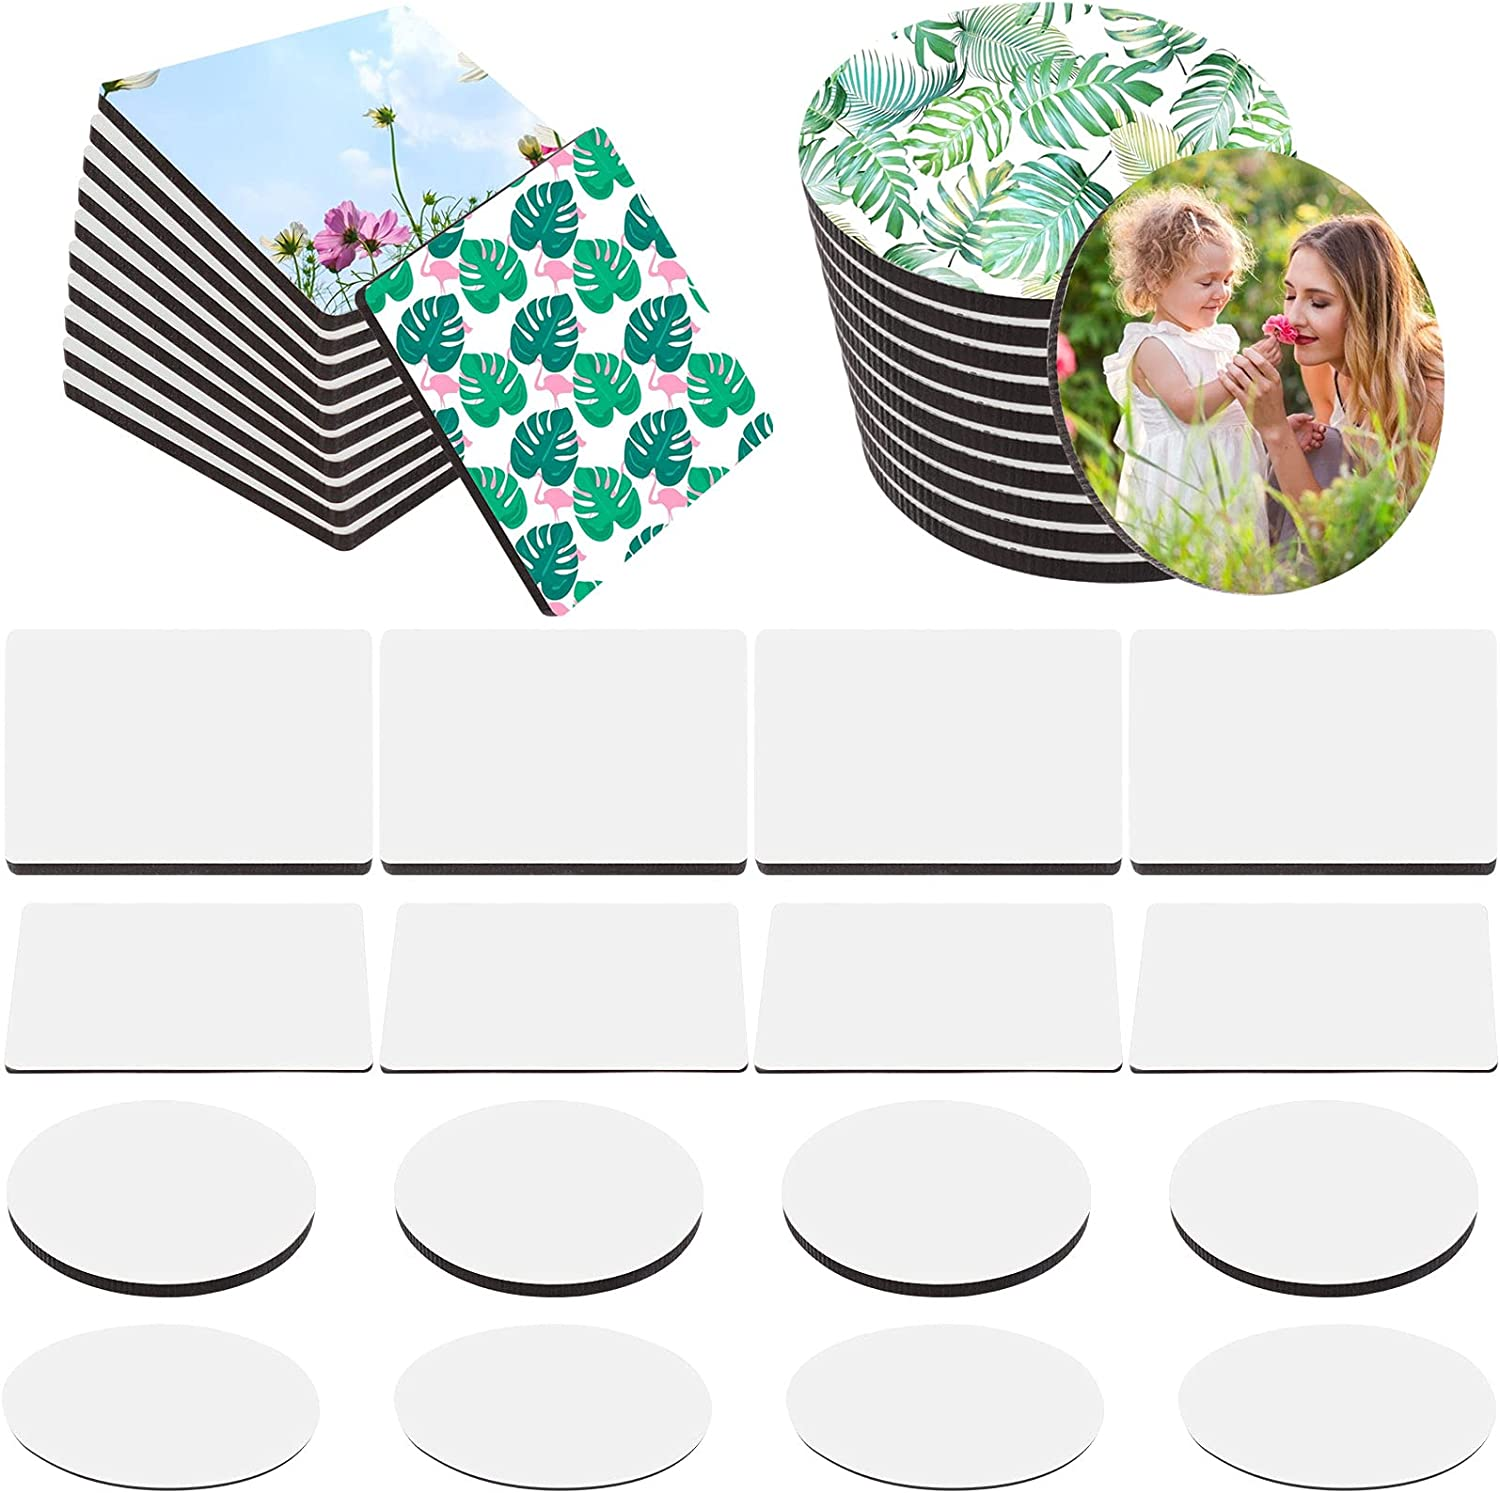 20 Pieces Sublimation Blank Max 89% OFF Refrigerator DIY Magnets Transf Max 64% OFF Heat